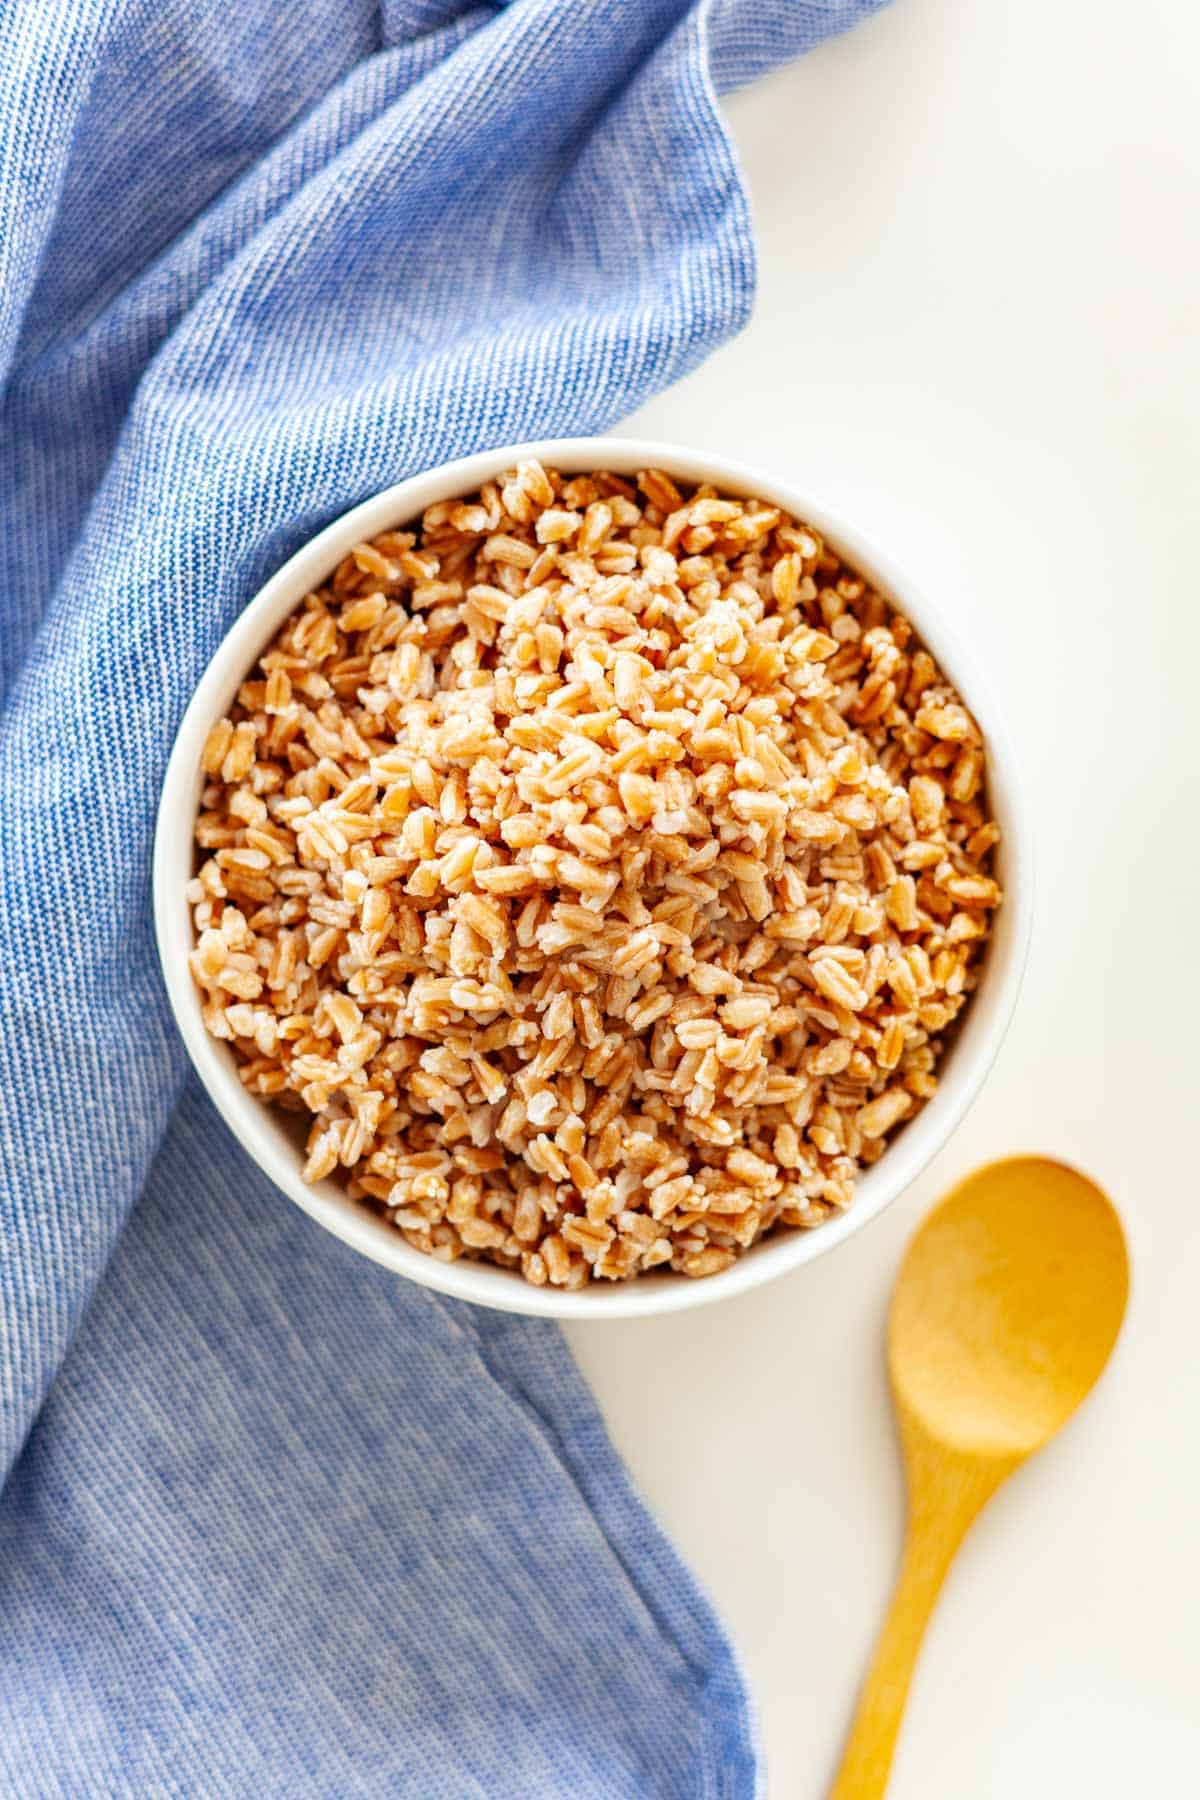 A bowl of cooked farro on a white background with a blue towel and small bamboo spoon